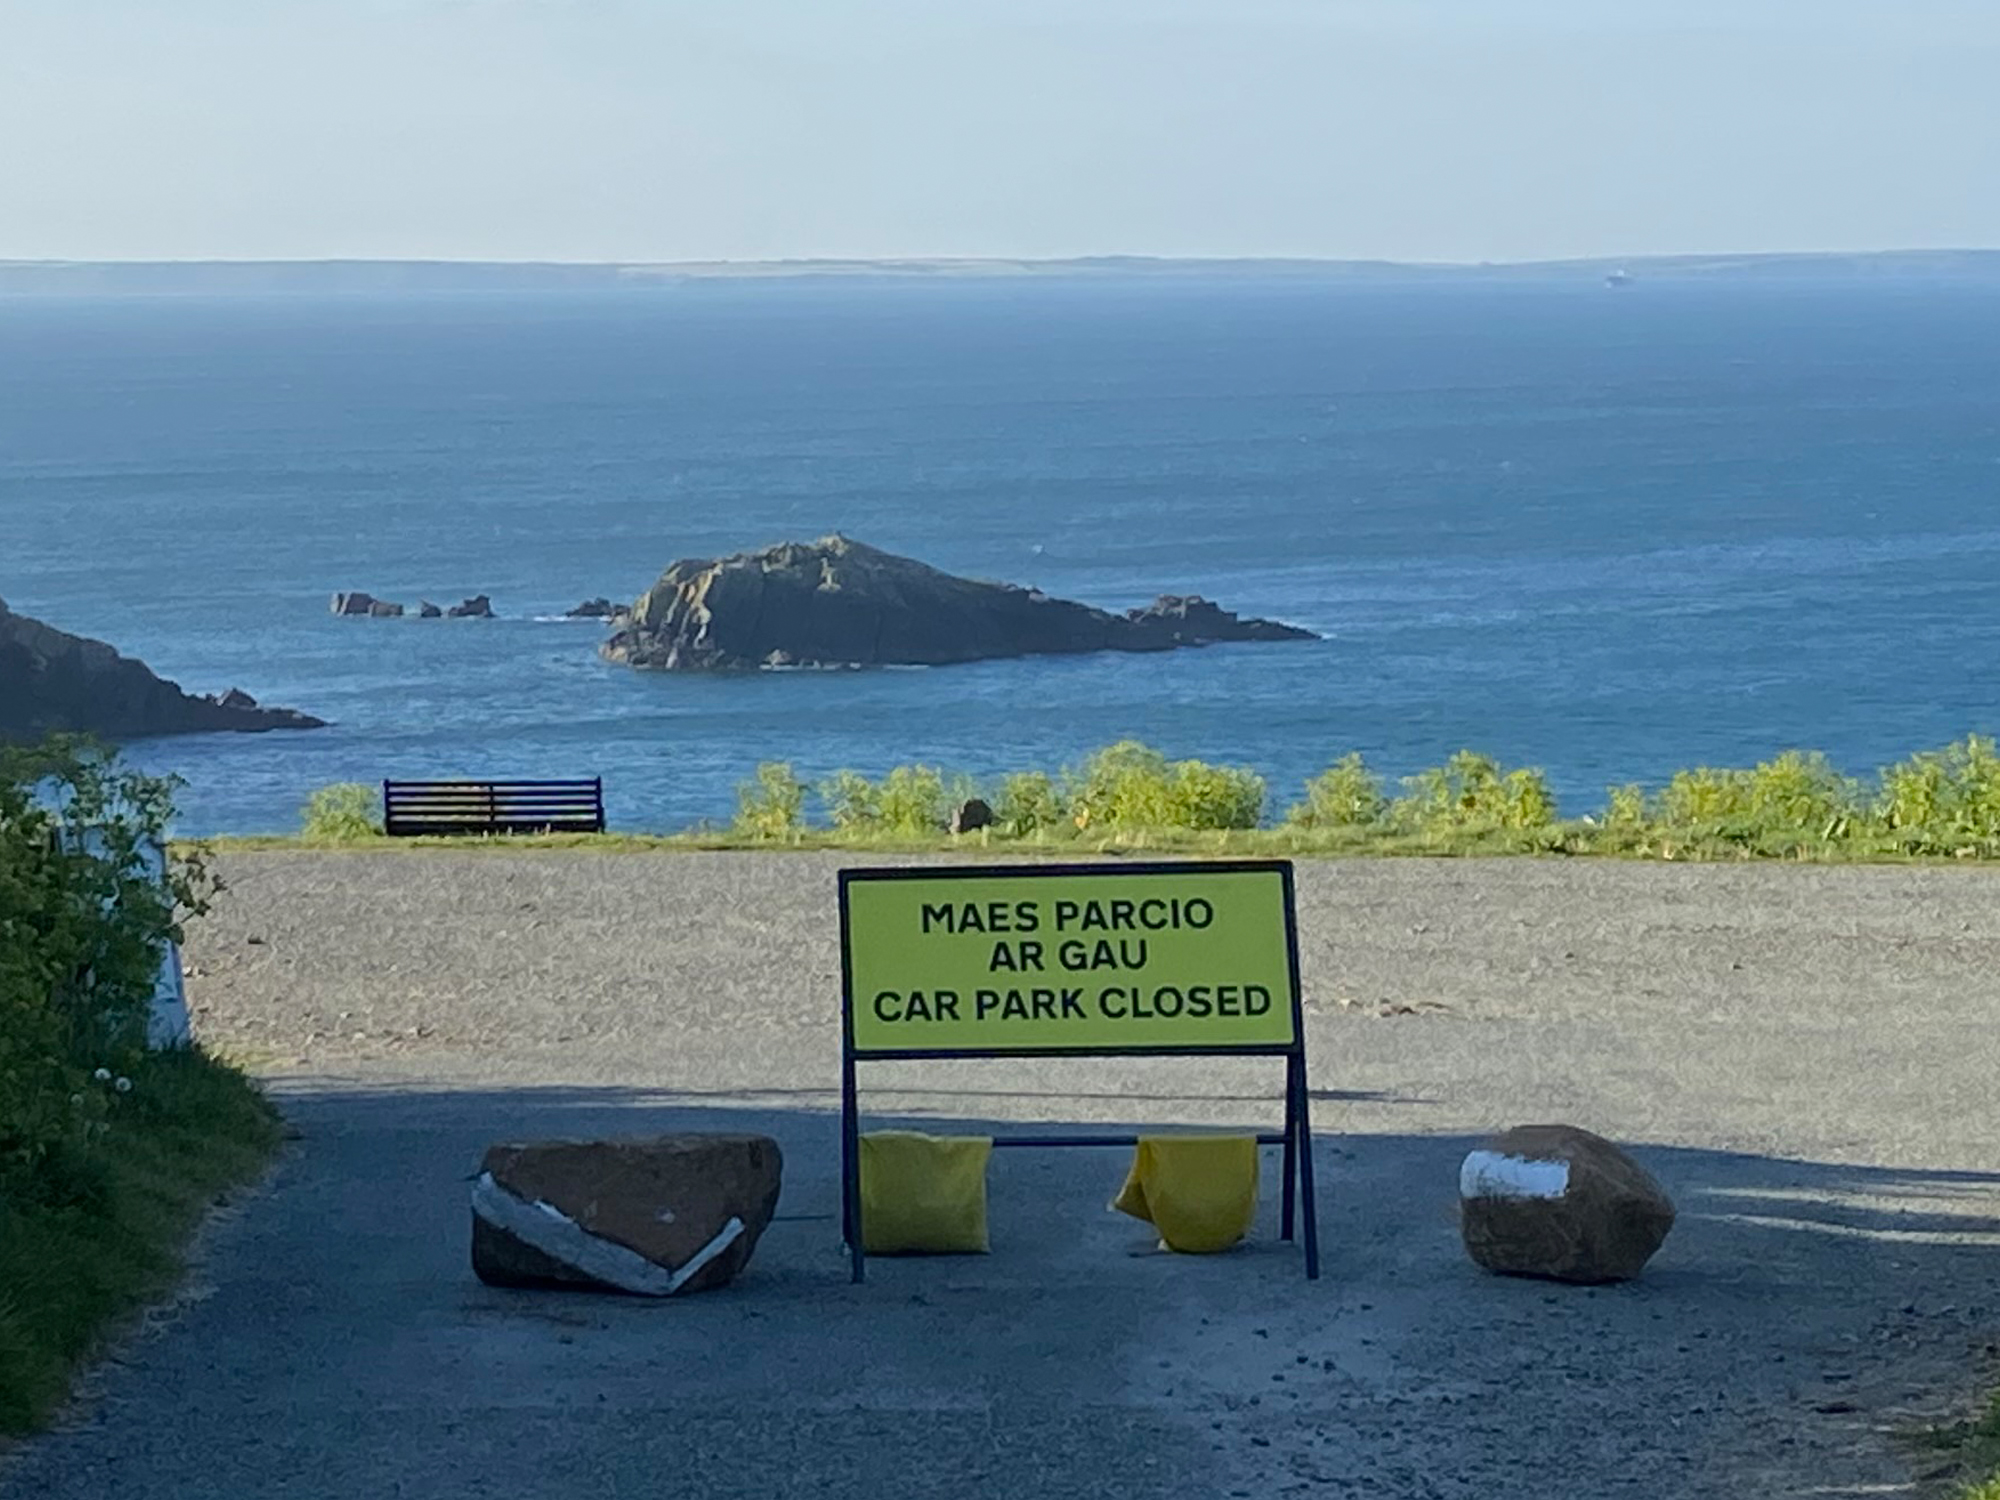 Caerfai Car Park closure sign